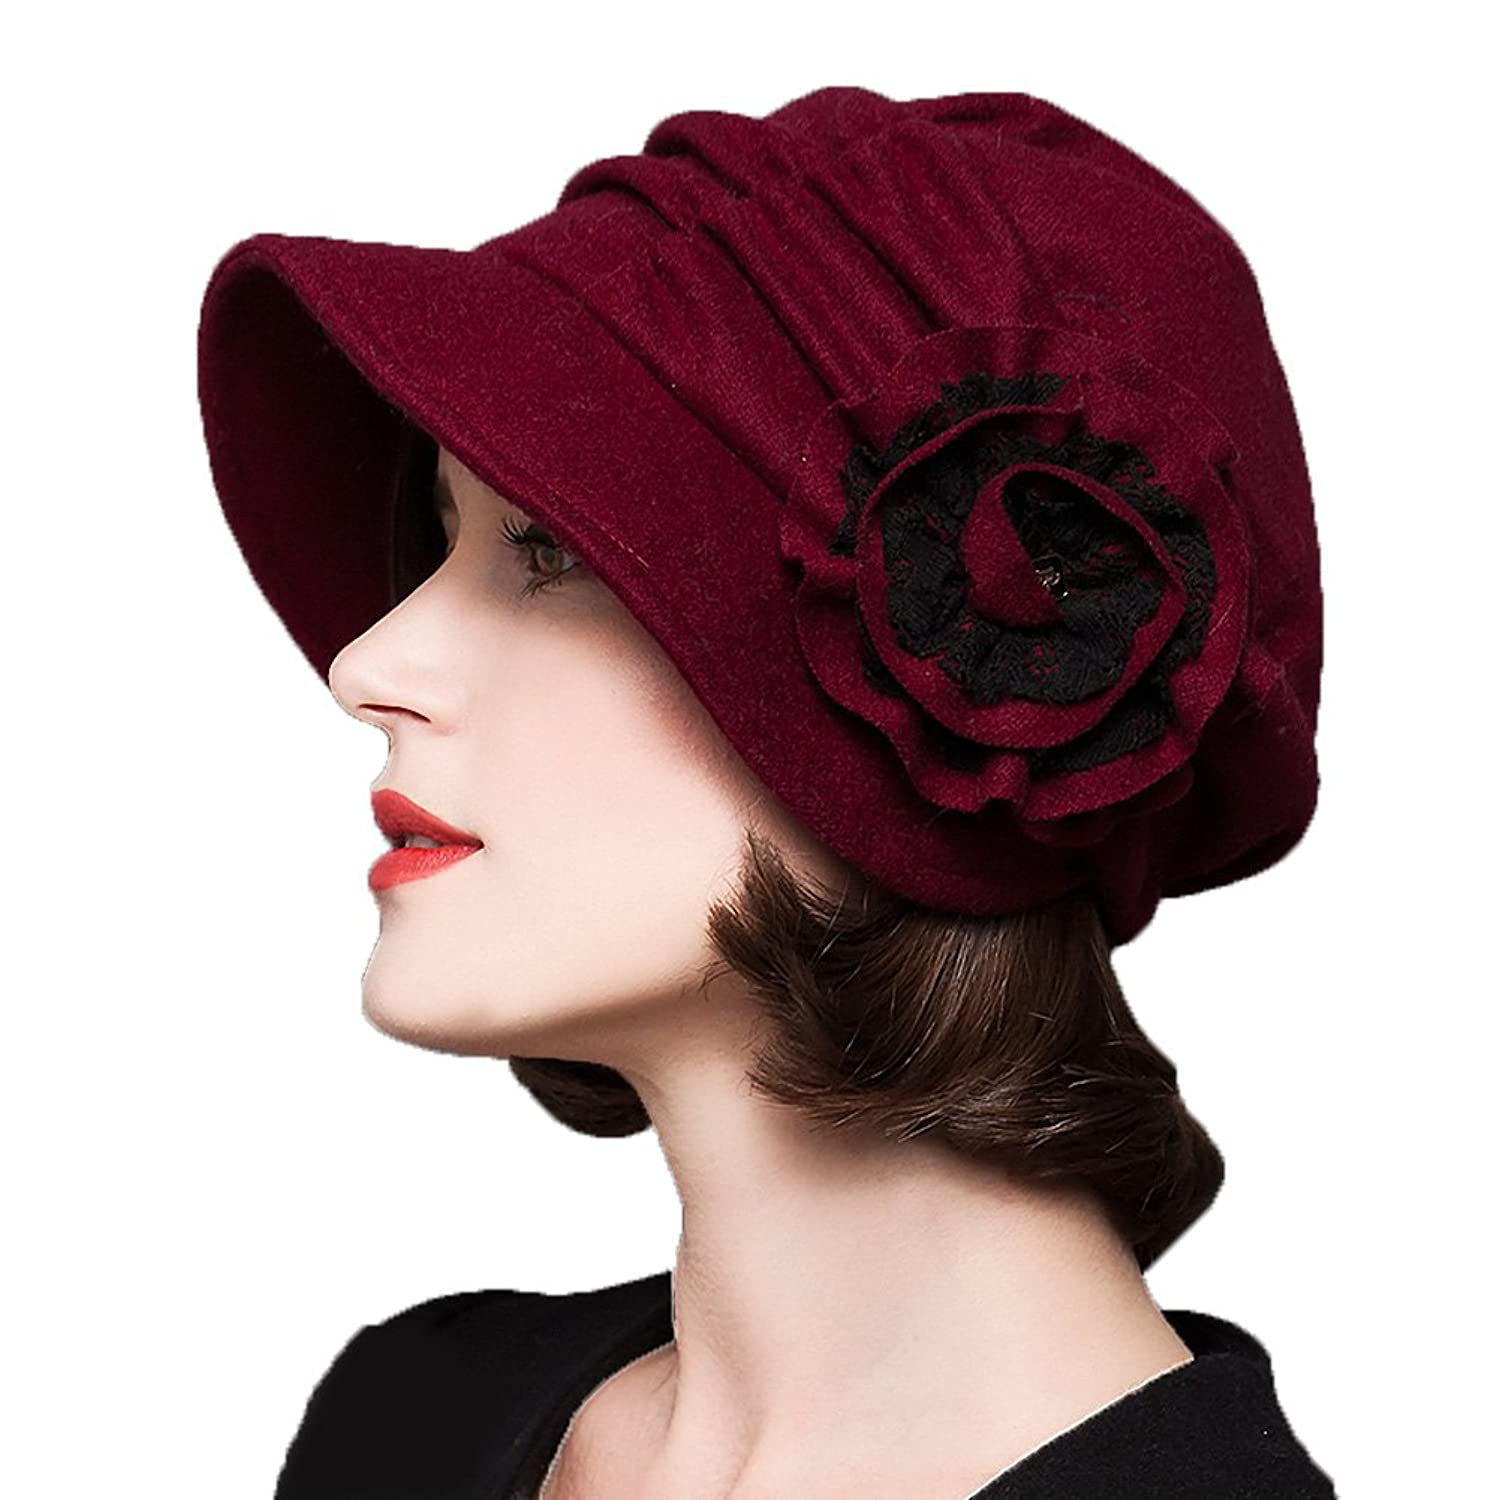 Roaring 20s Costumes- Flapper Costumes, Gangster Costumes Decorative Flowers Wool Beret Maitose Trade Womens Decorative Flowers Wool Beret $28.40 AT vintagedancer.com